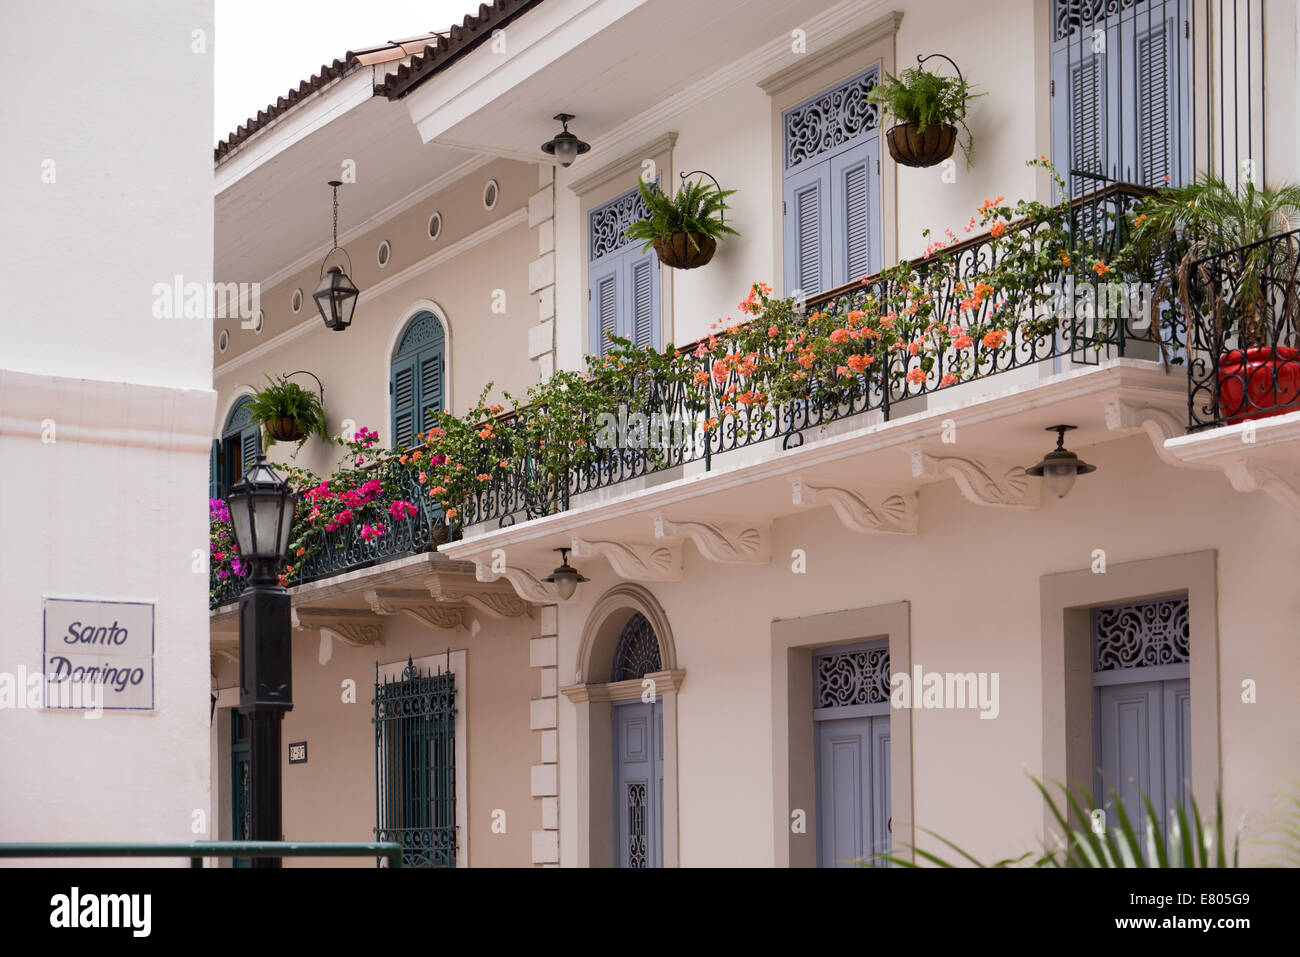 Tourist attractions and destination scenics. View of pictouresque street of Casco Antiguo, Panama City - Stock Image